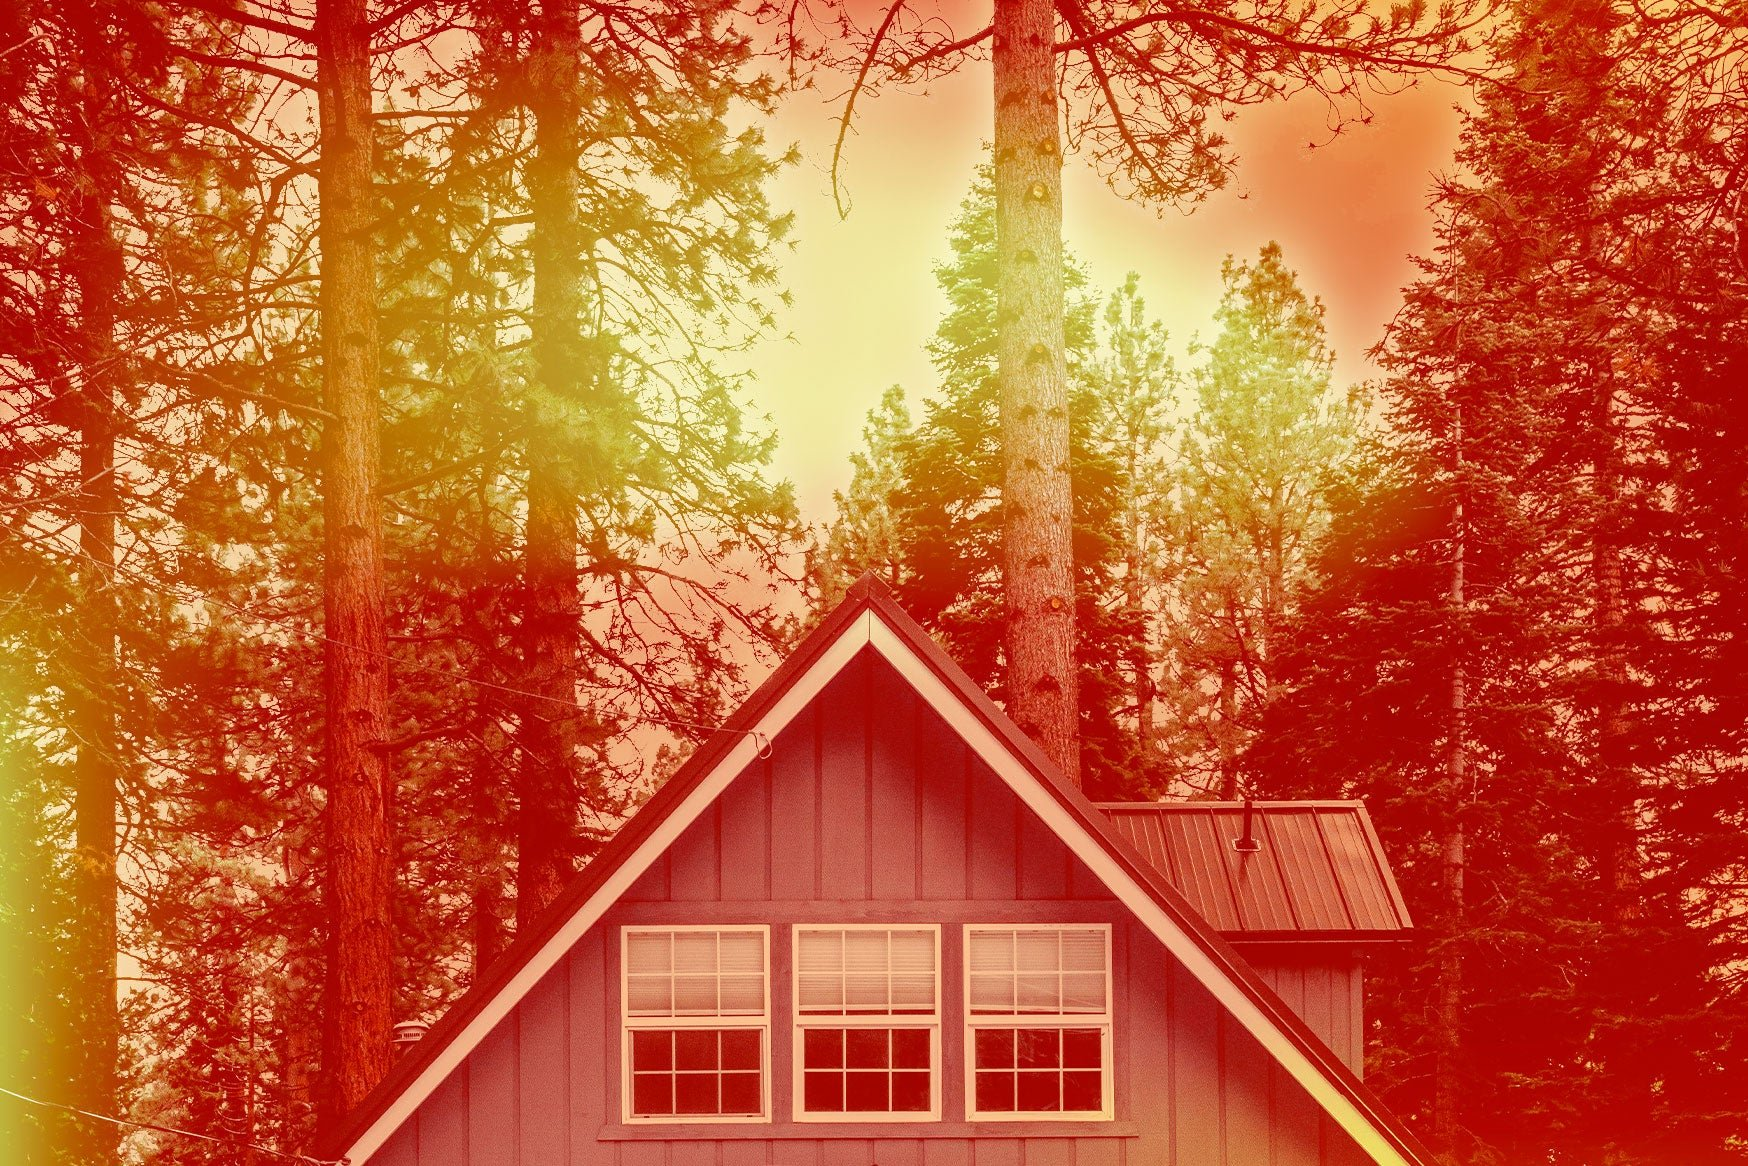 How to build a house that stays cool without AC